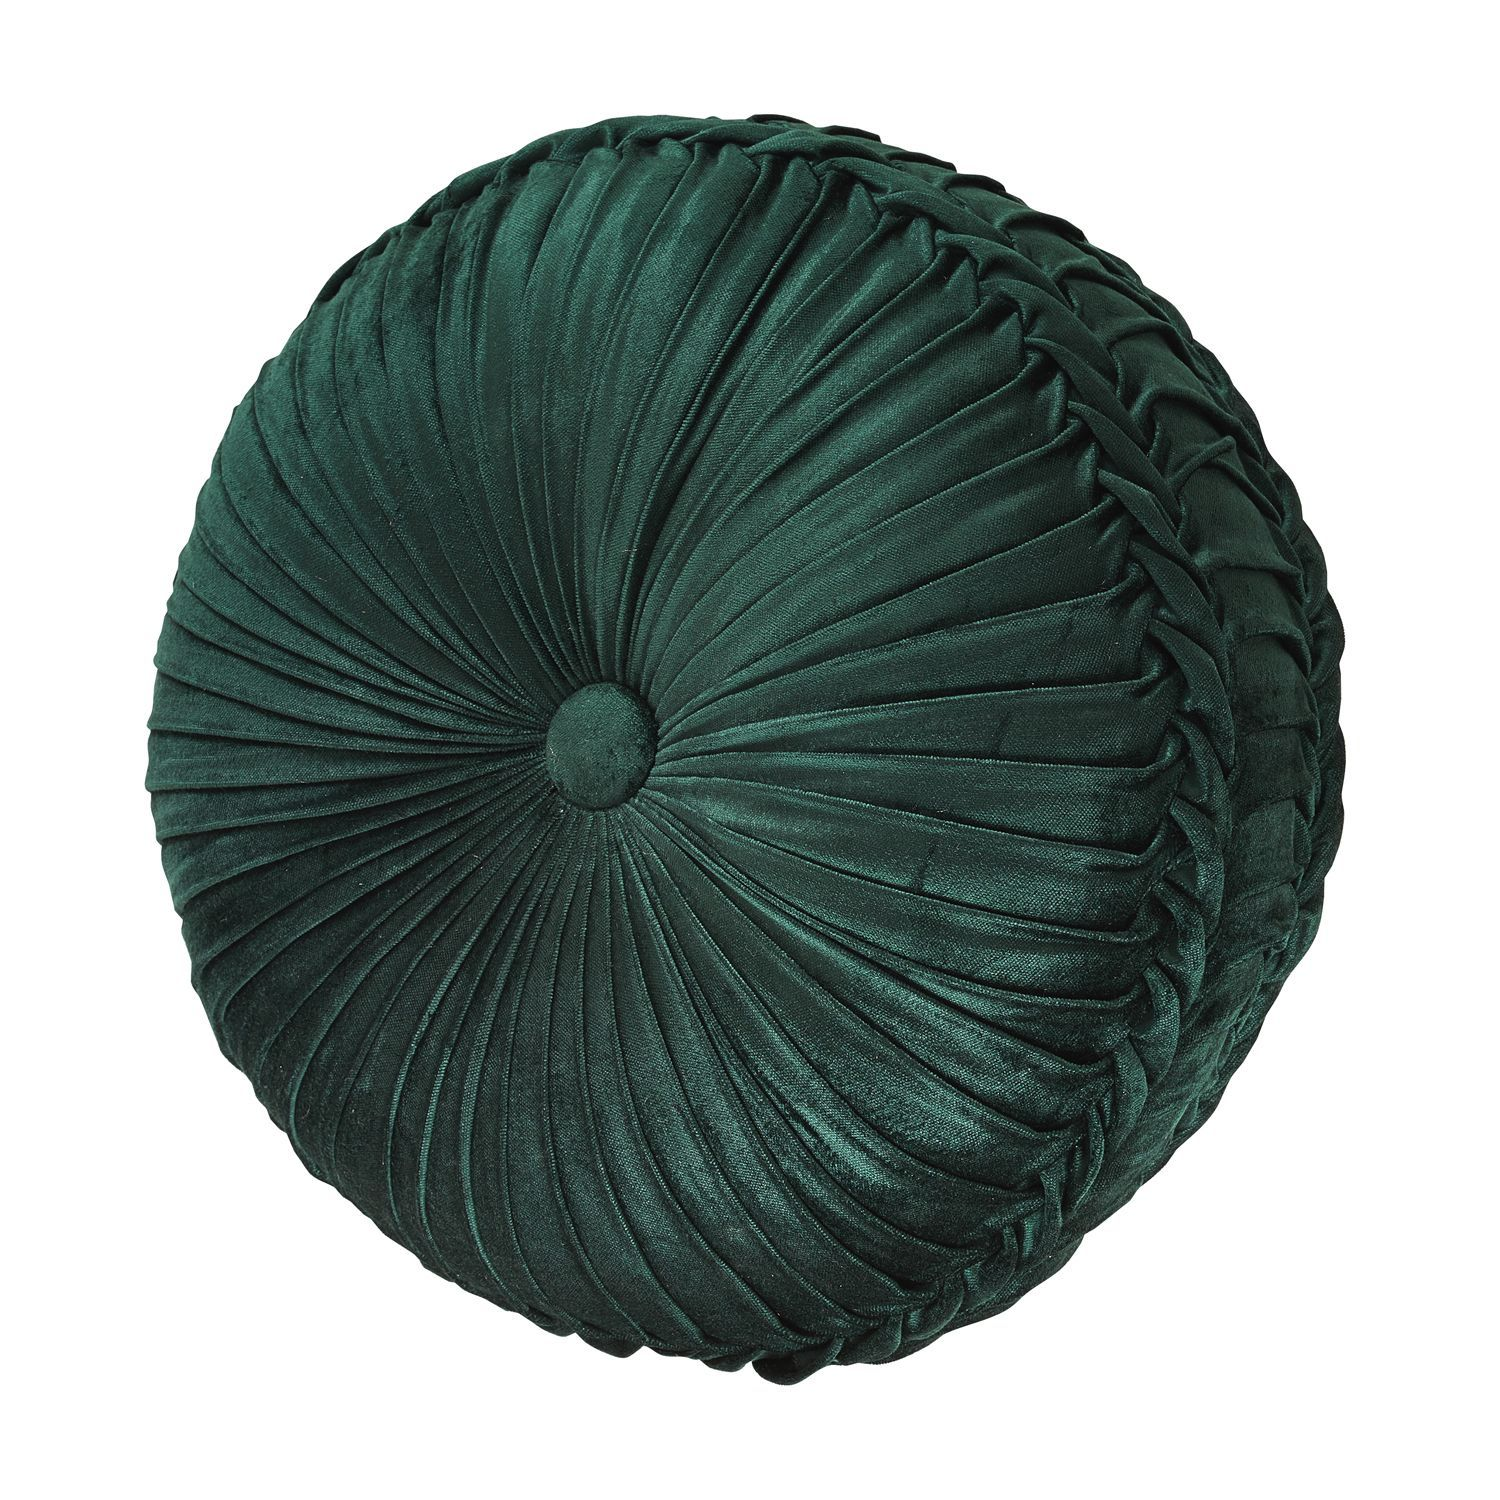 emerald green tufted round pillow